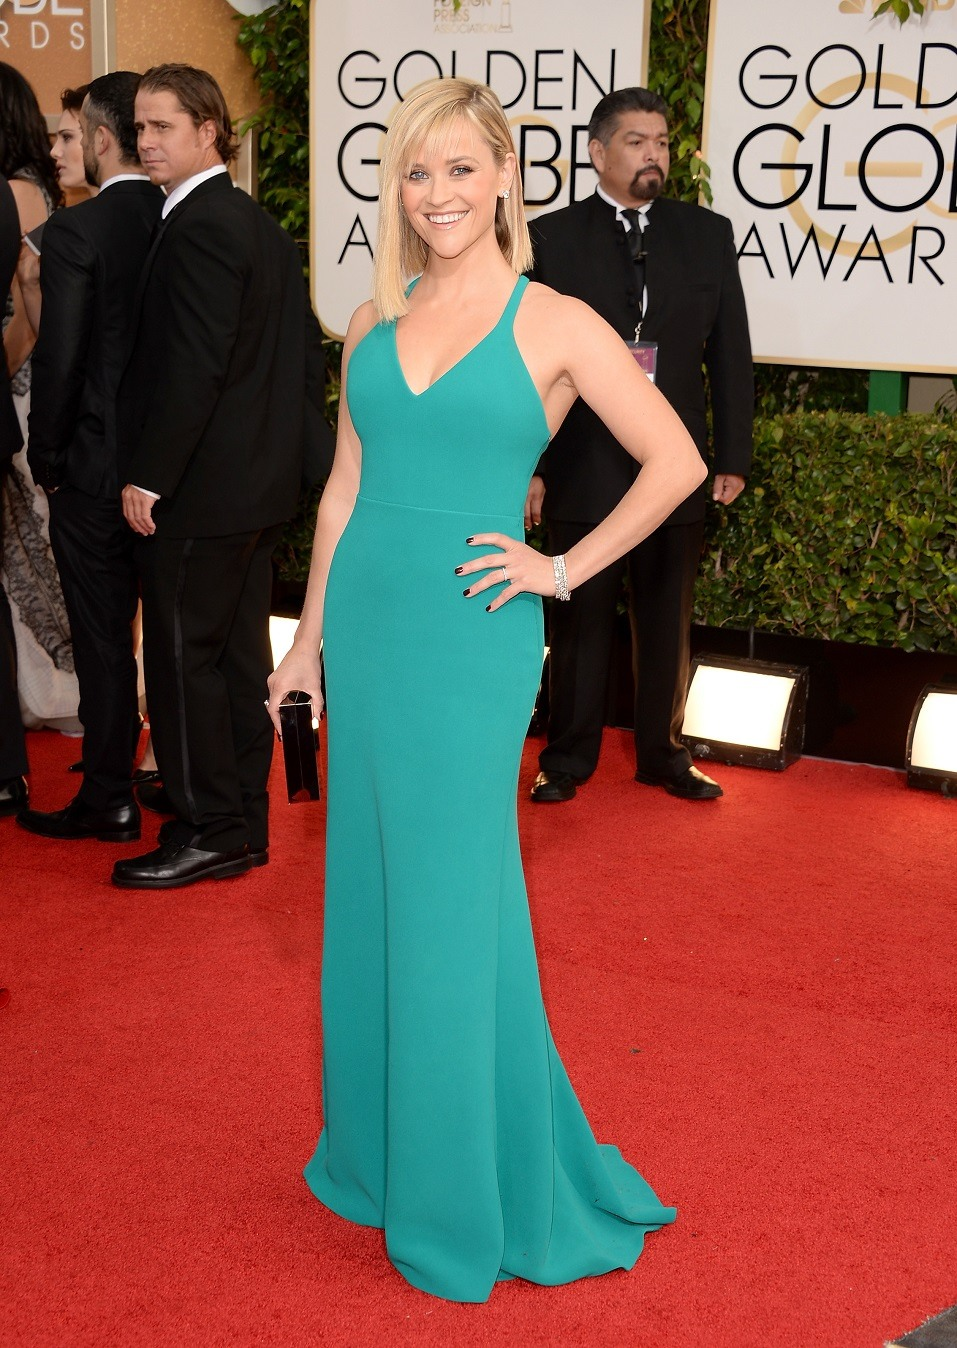 Actress Reese Witherspoon attends the 71st Annual Golden Globe Awards